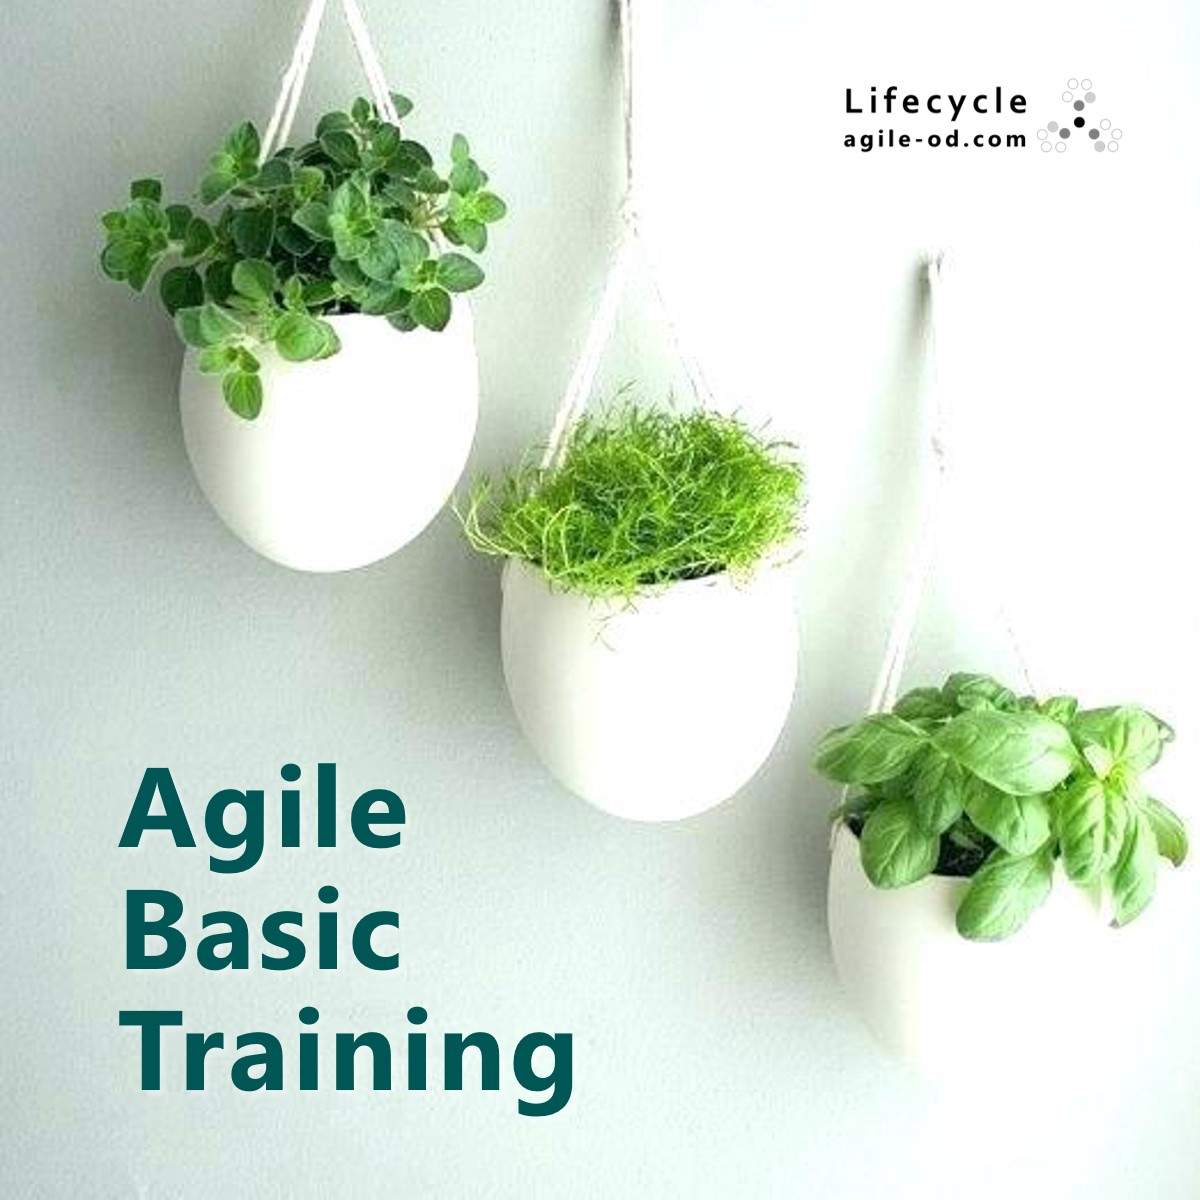 Agile Basic Training | agile-od.com